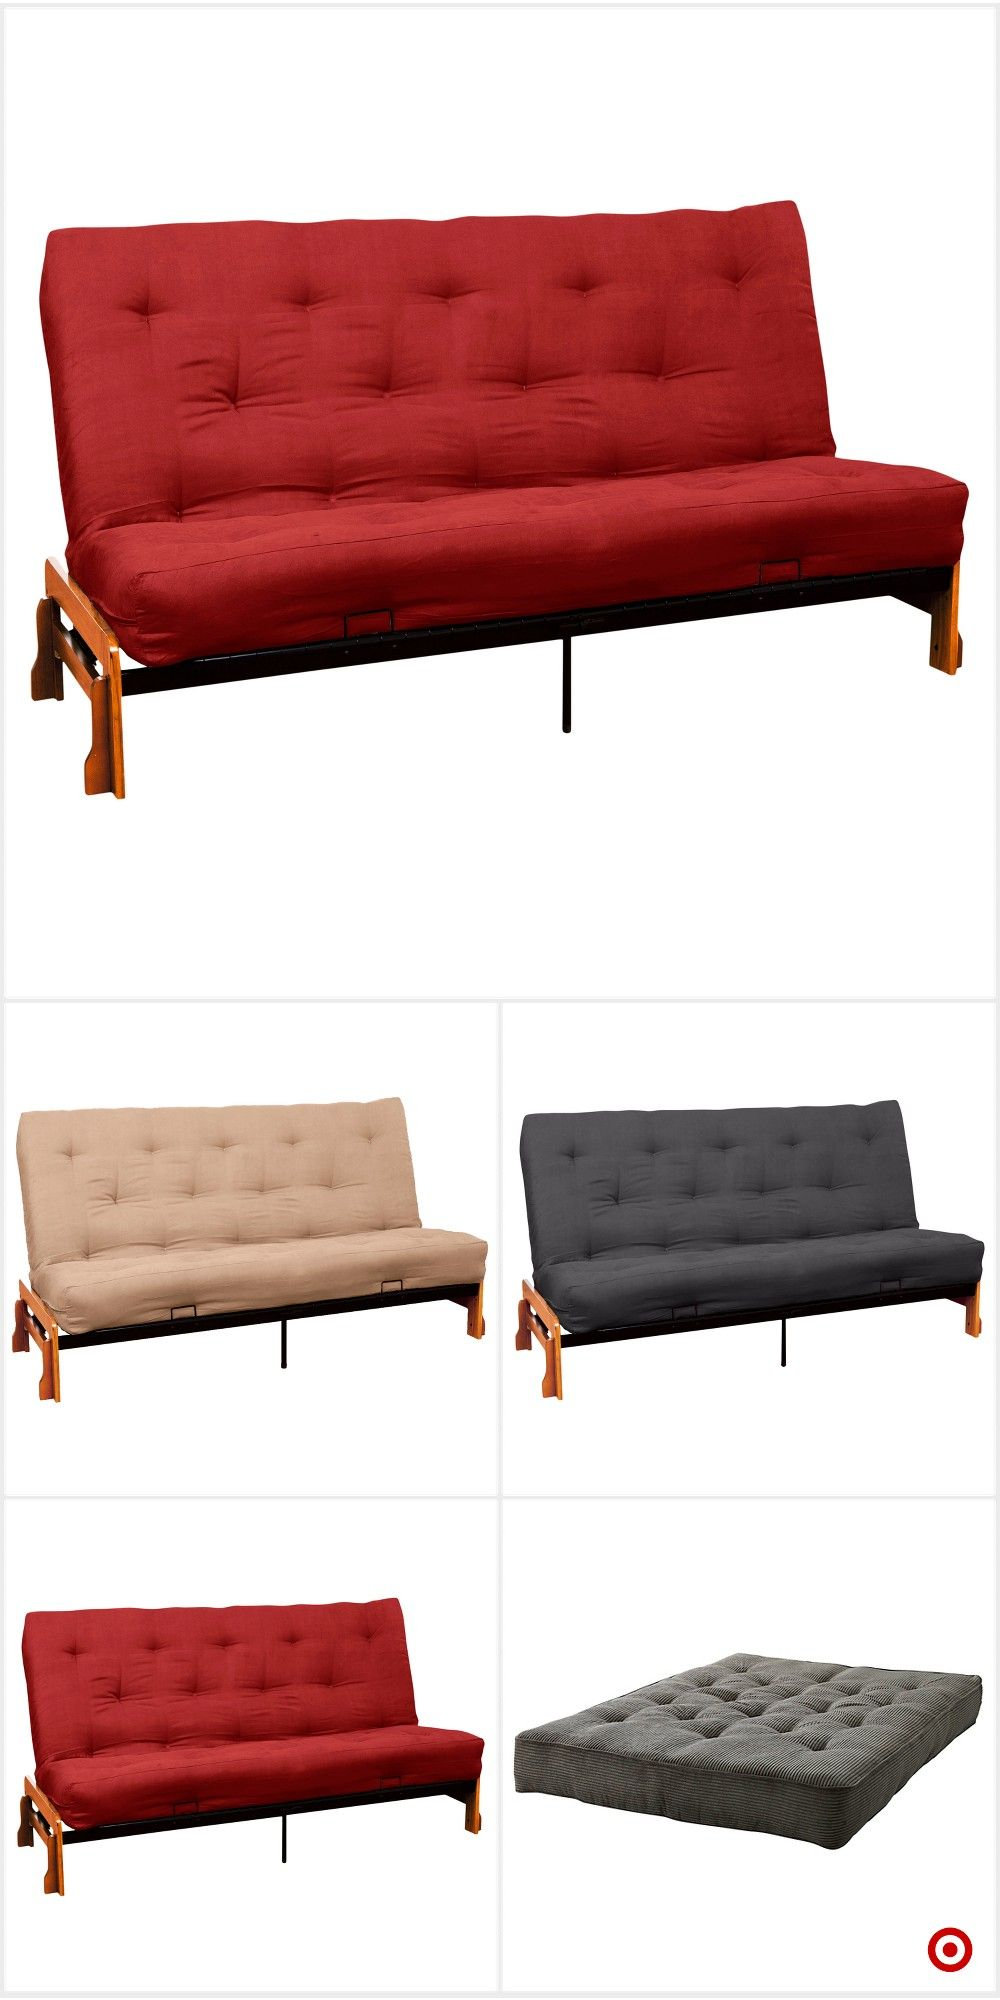 sourceimage tufted dhp pin prices transitional details futon products furniture living spa